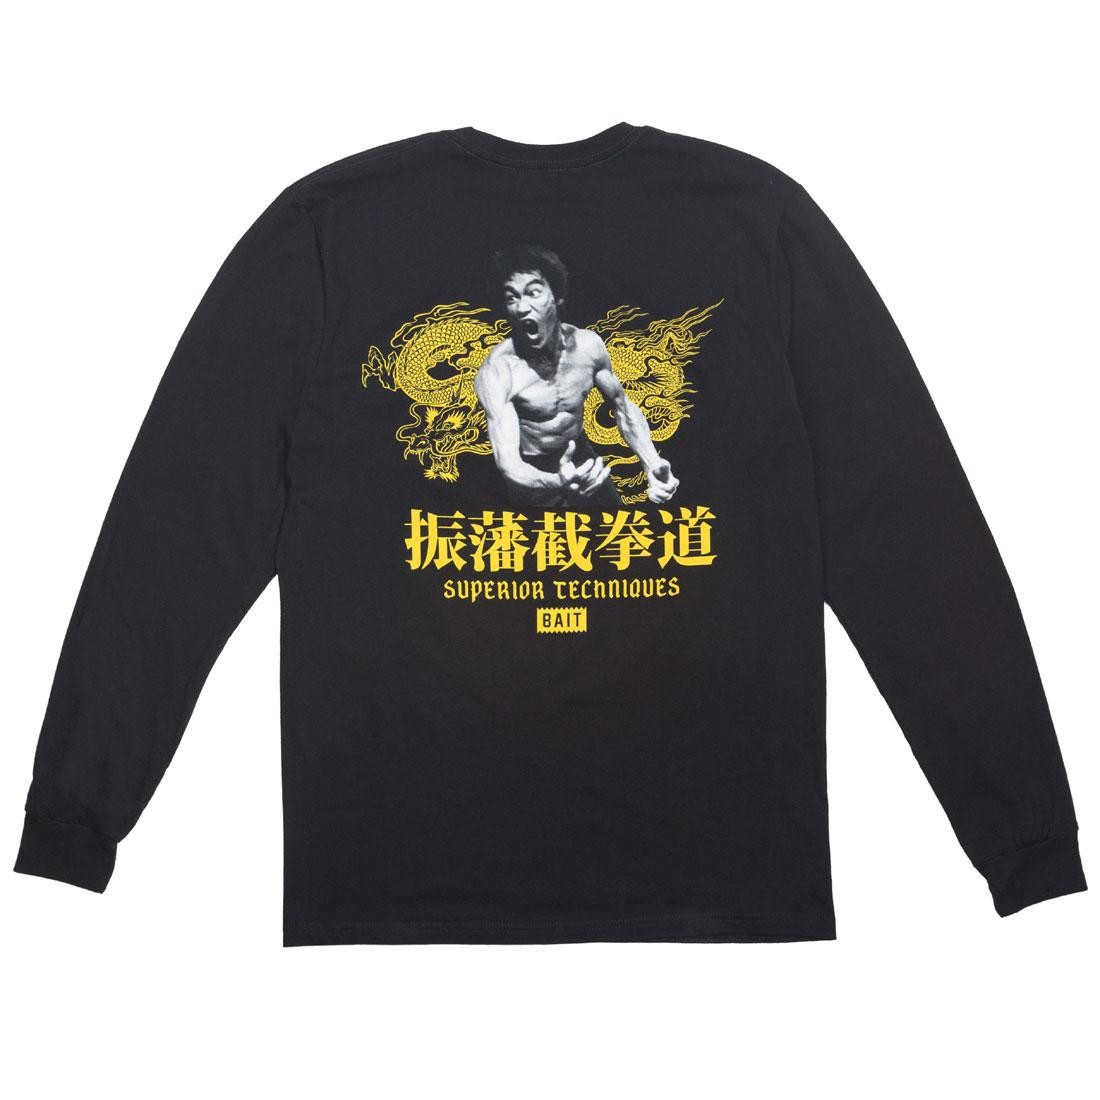 BAIT x Bruce Lee Men Superior Techniques Long Sleeve Tee (black)